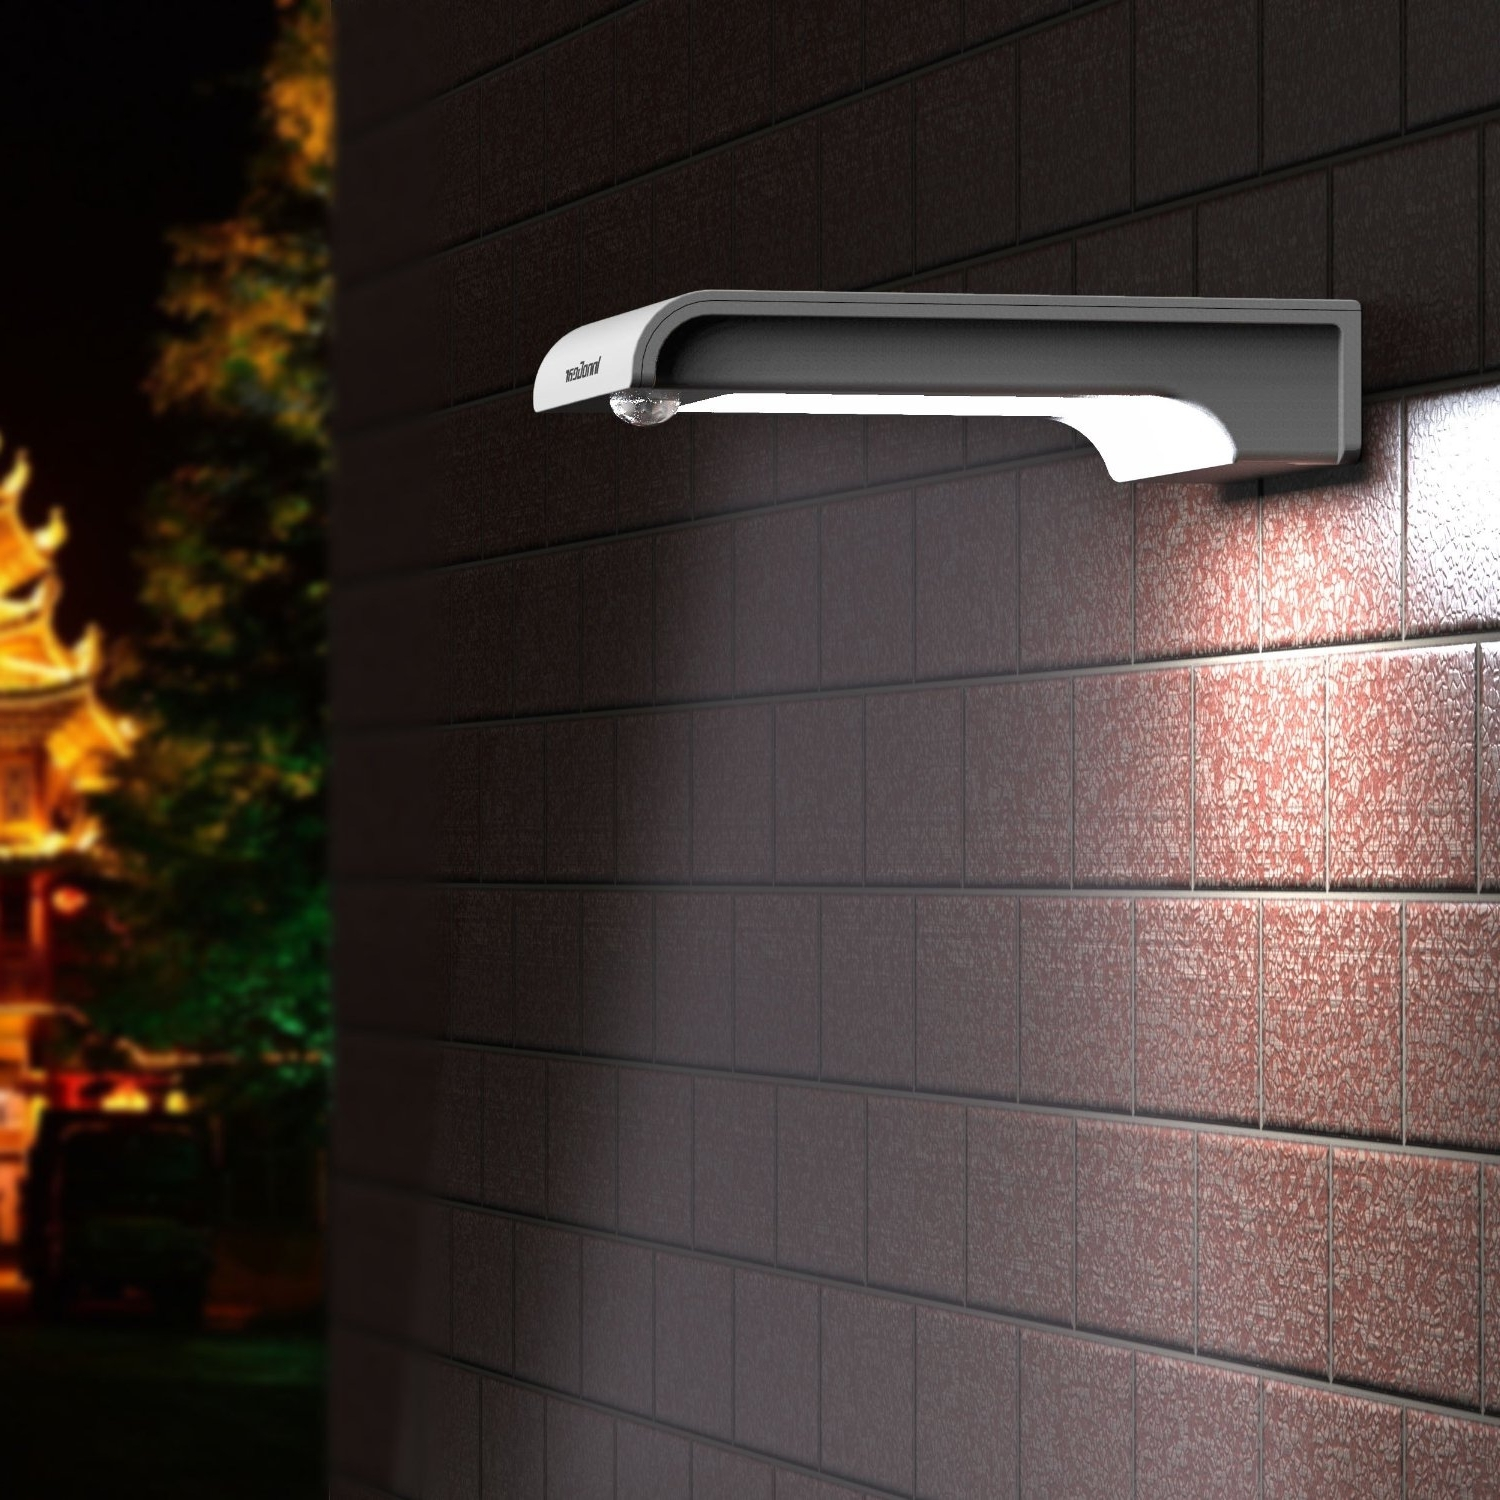 Latest Solar Powered Porch Light Amazon Com Upgraded Motion Sensor Innogear Inside Hanging Outdoor Security Lights (View 10 of 20)